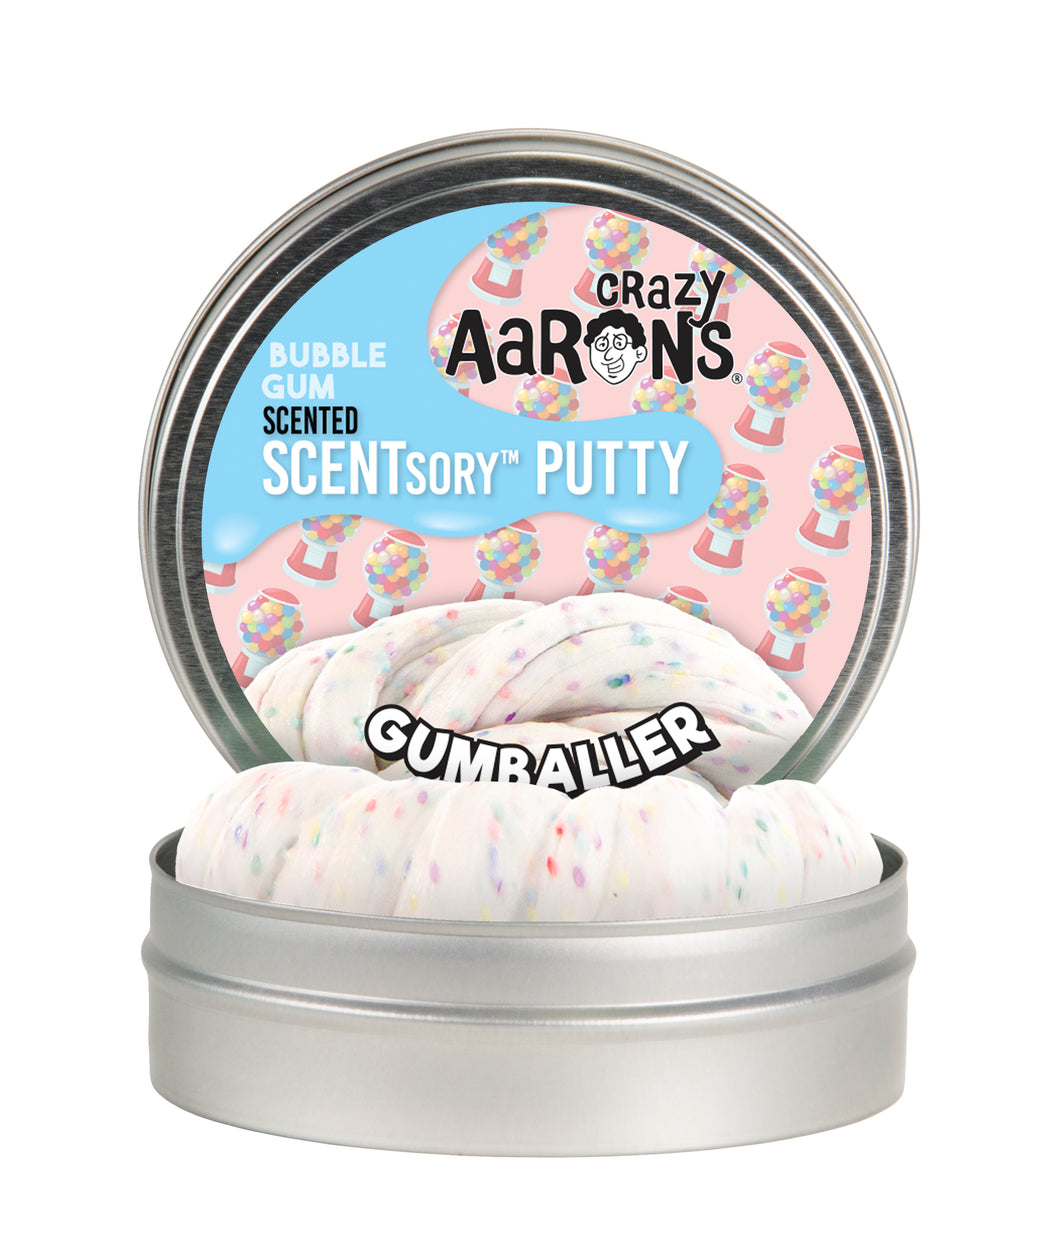 Crazy Aaron's Thinking Putty - SCENTsory-Sweets - Scented Gumballer